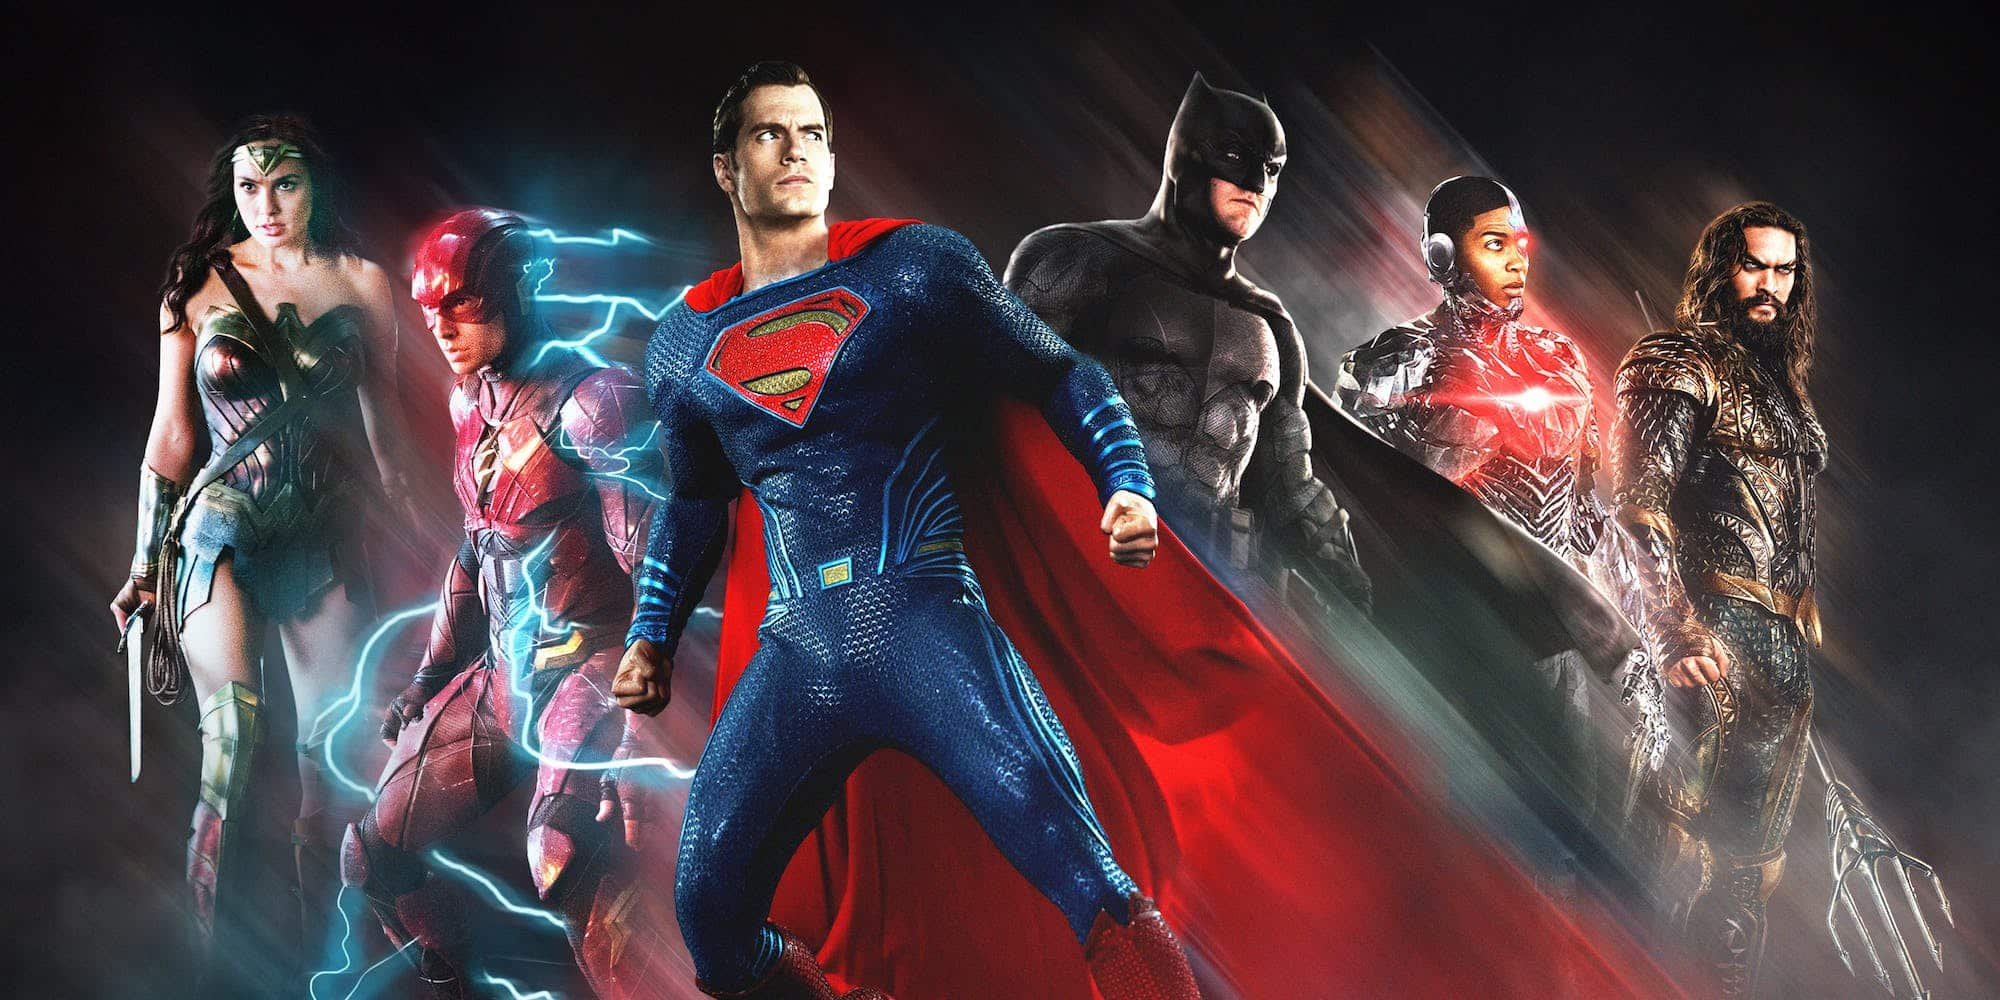 The justice league blu ray and dvd details are disappointing stopboris Images